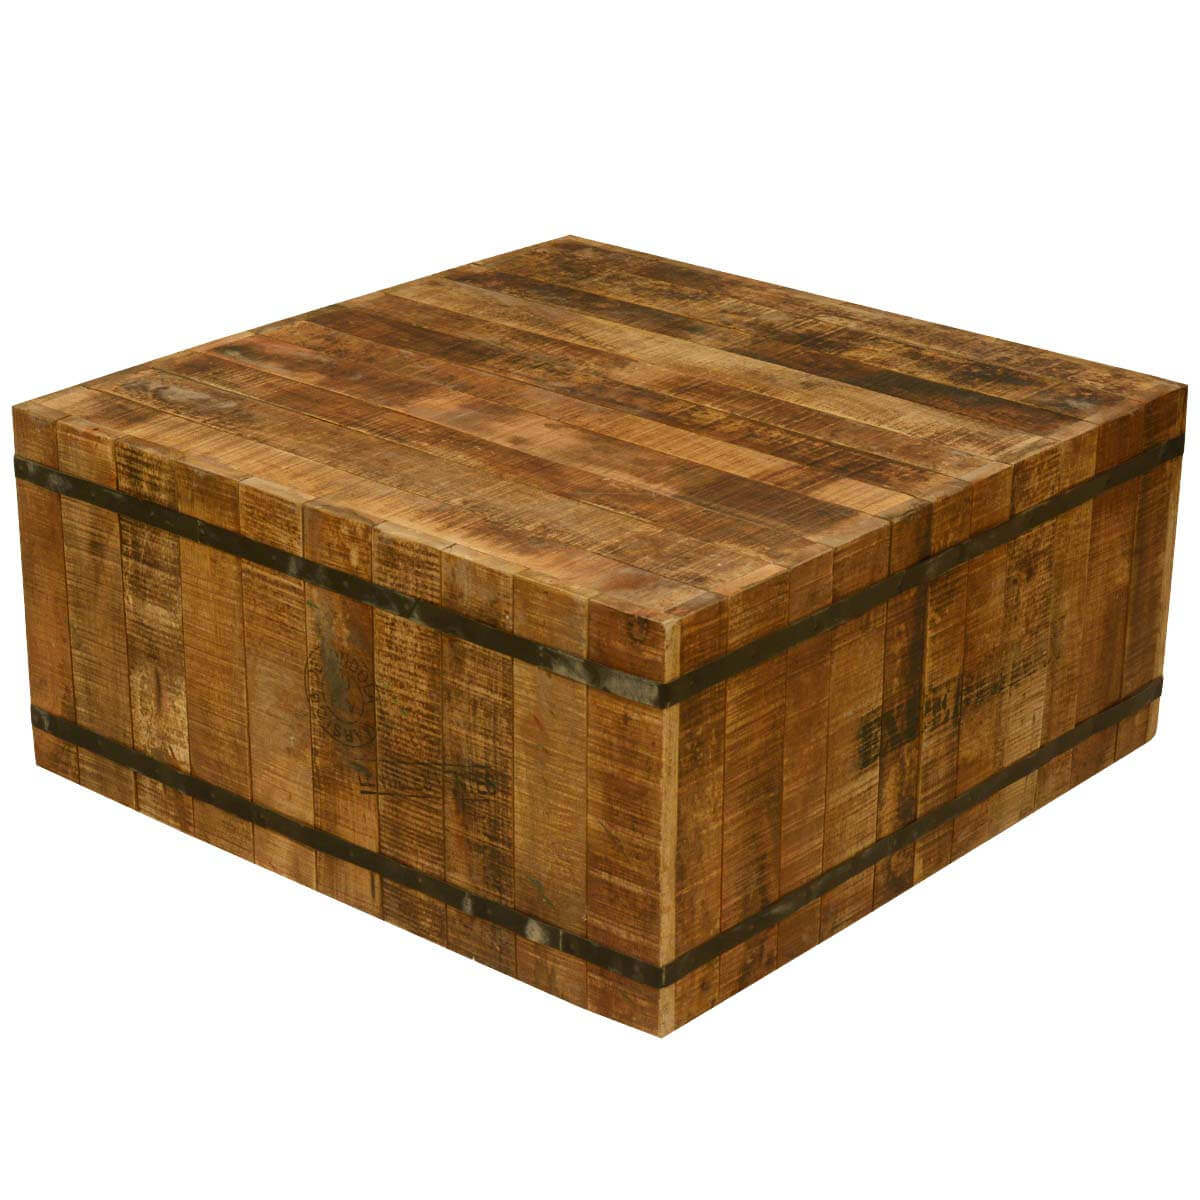 Rustic Wood And Metal Coffee Tables: Hand Crafted Rustic Reclaimed Wood And Iron Coffee Table